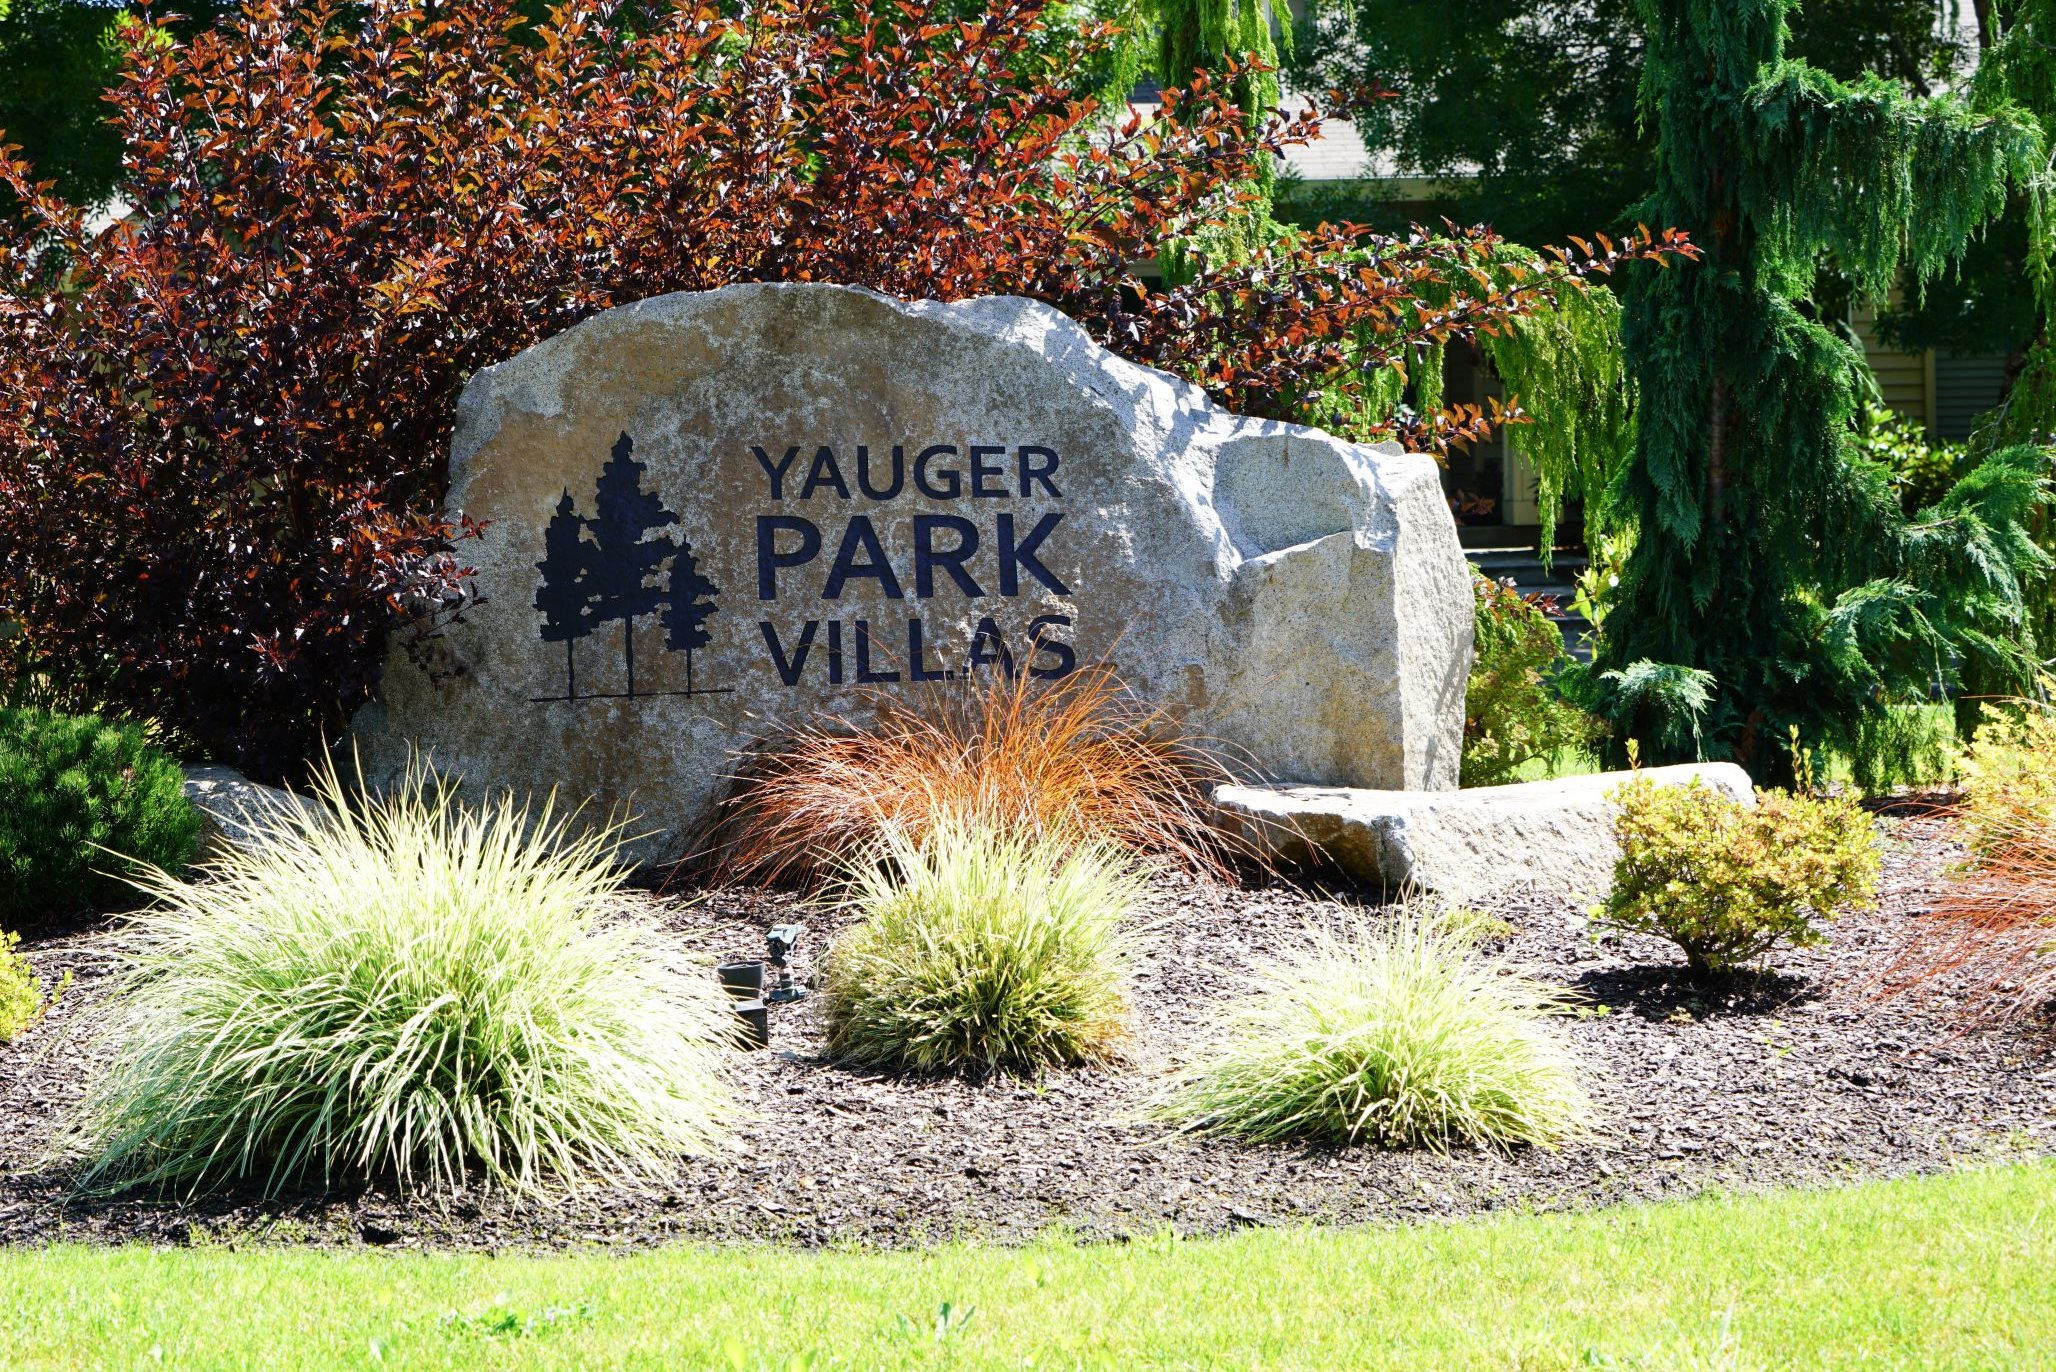 Monument Entrance Signage at Yauger Park Villas, Olympia, WA, 98502